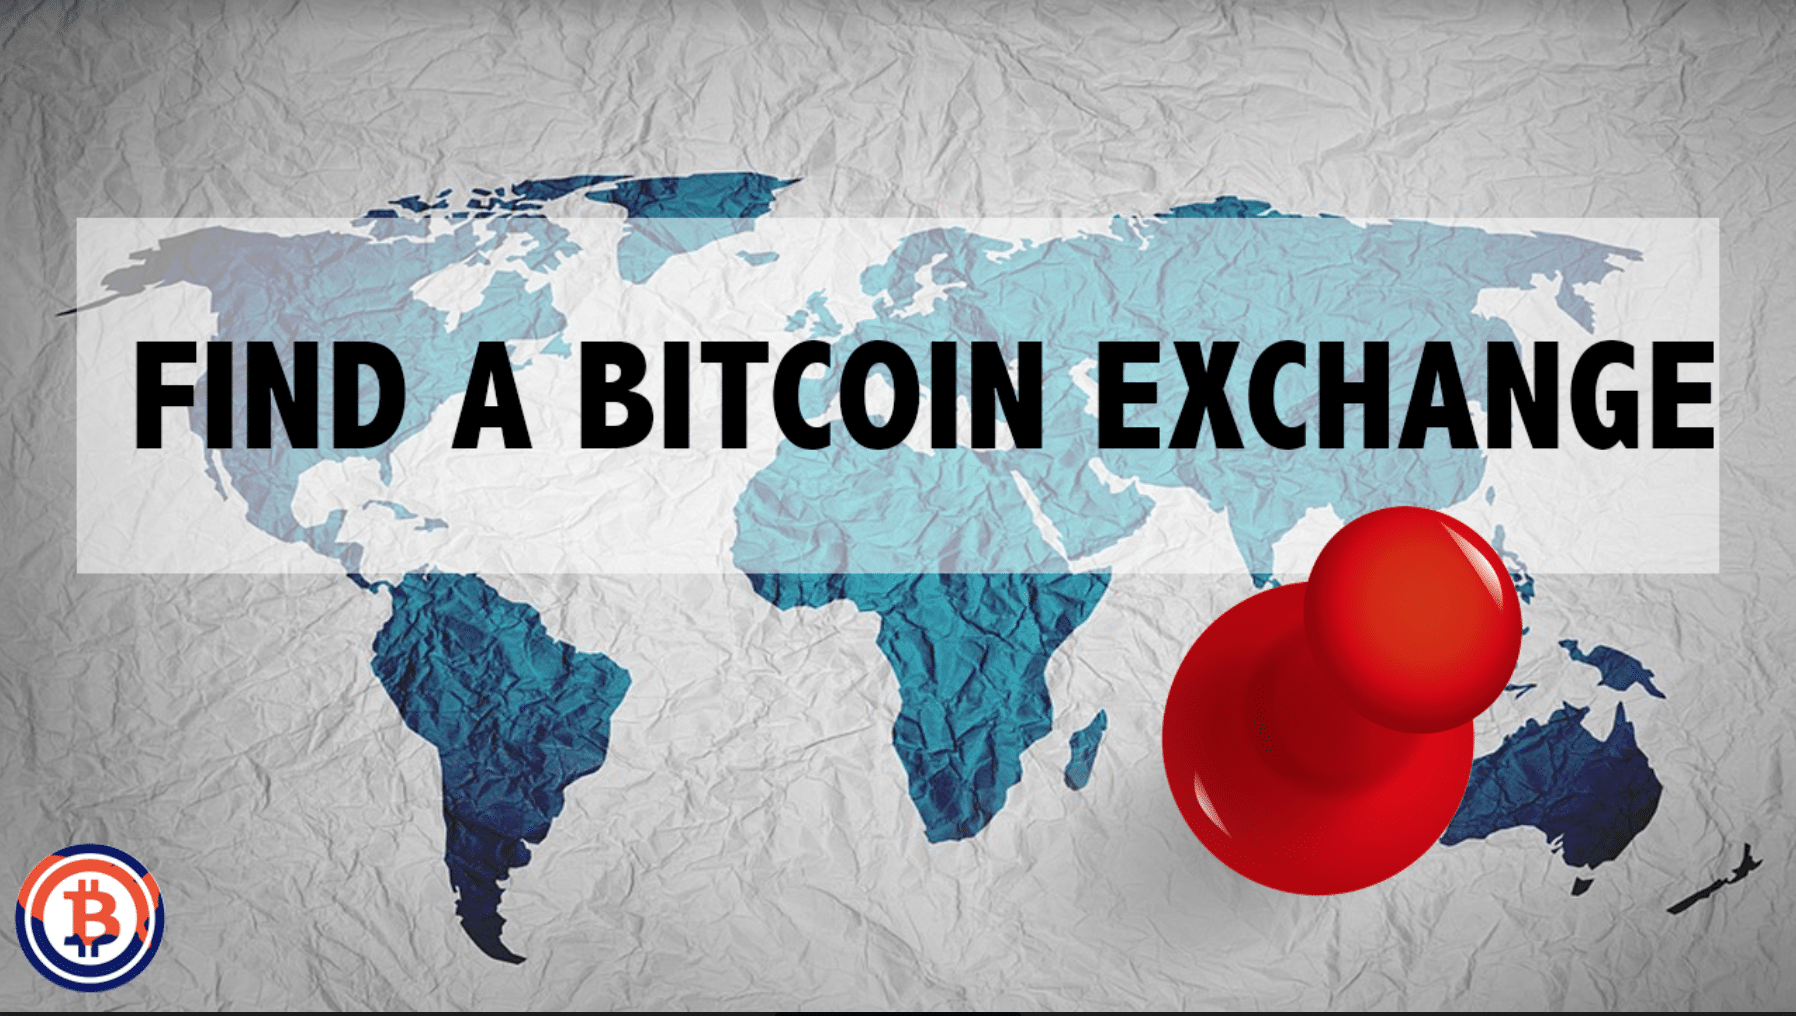 Important Characteristics of Bitcoin Exchanges